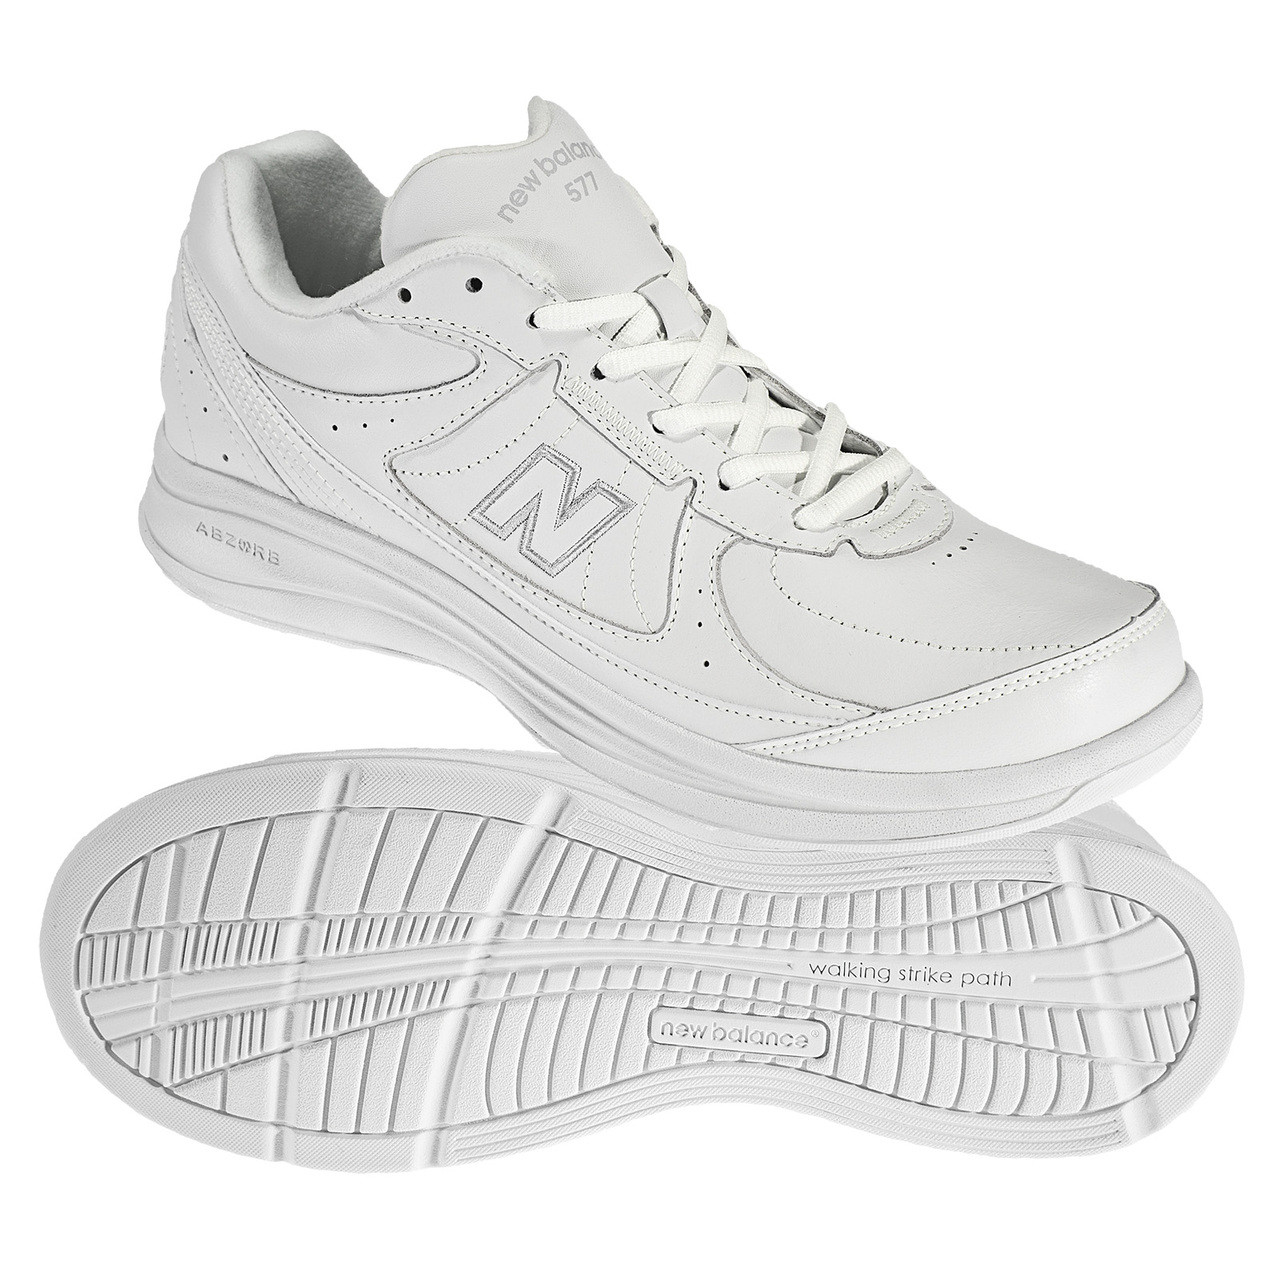 chaussures de sport f4a99 c6f35 New Balance Men's MW577WT. Cushioned Leather Walker in Widths B to 4E -  Made in USA!